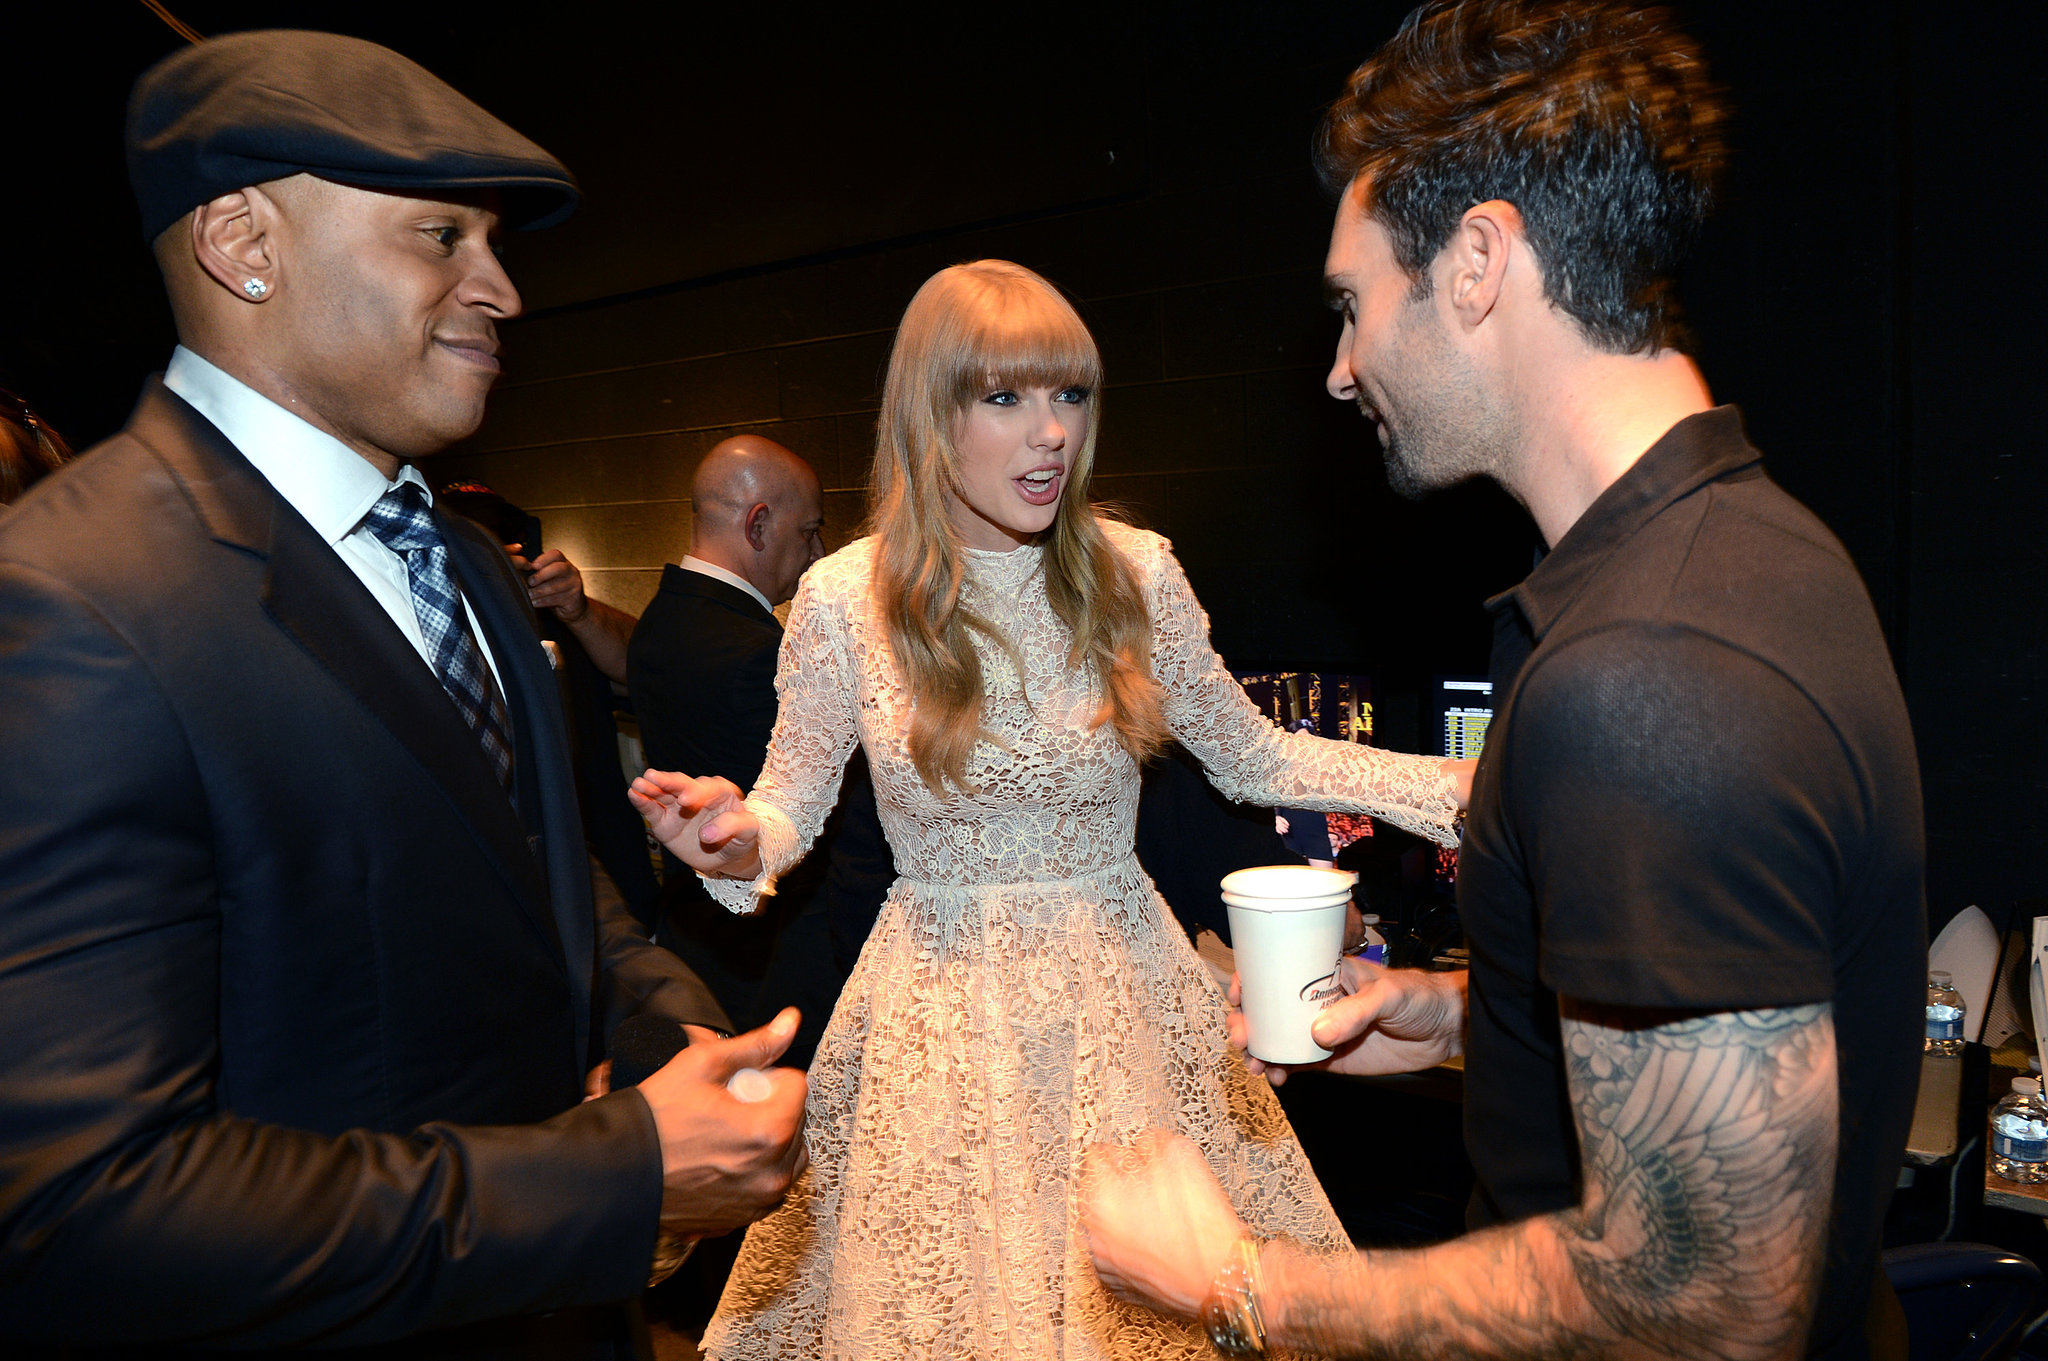 Taylor Swift hung backstage with LL Cool J and Adam Levine at the Grammy Nominations Concert in December 2012.